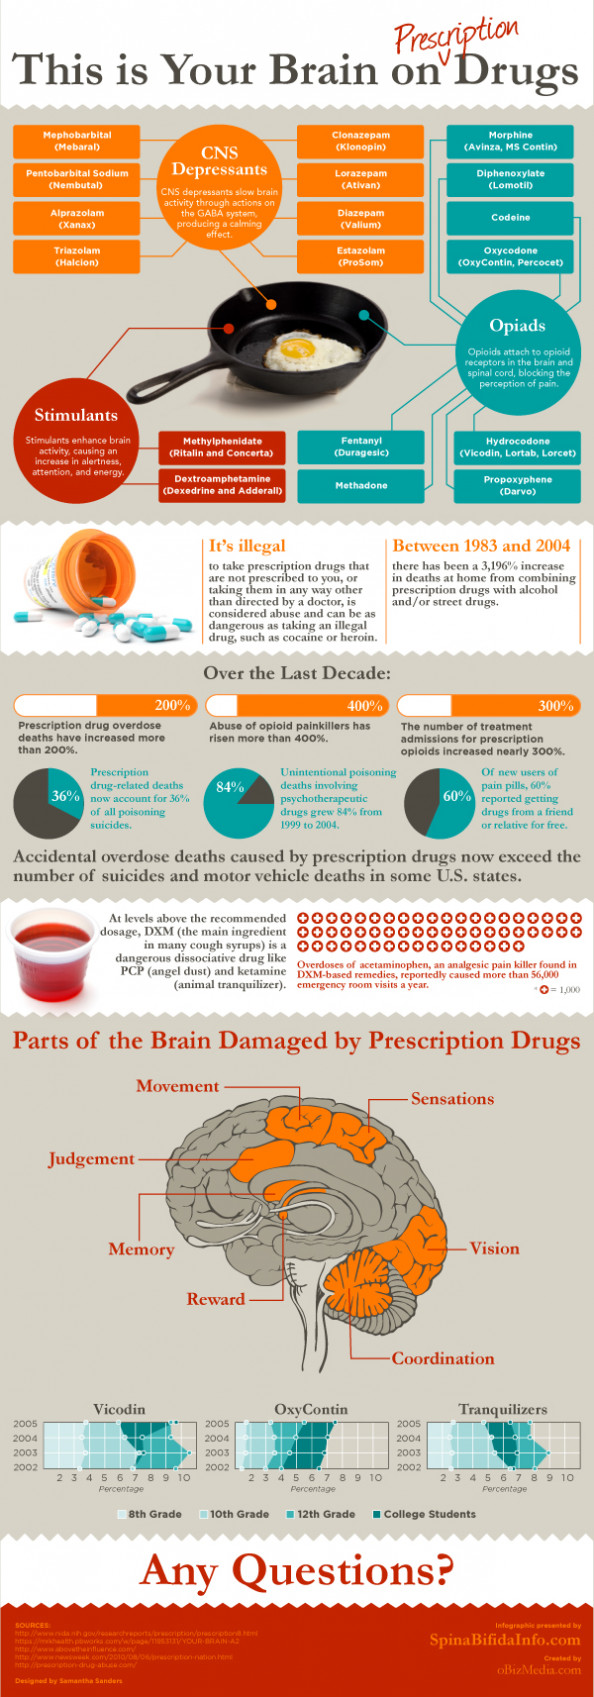 Your Brain on Prescription Drugs Infographic